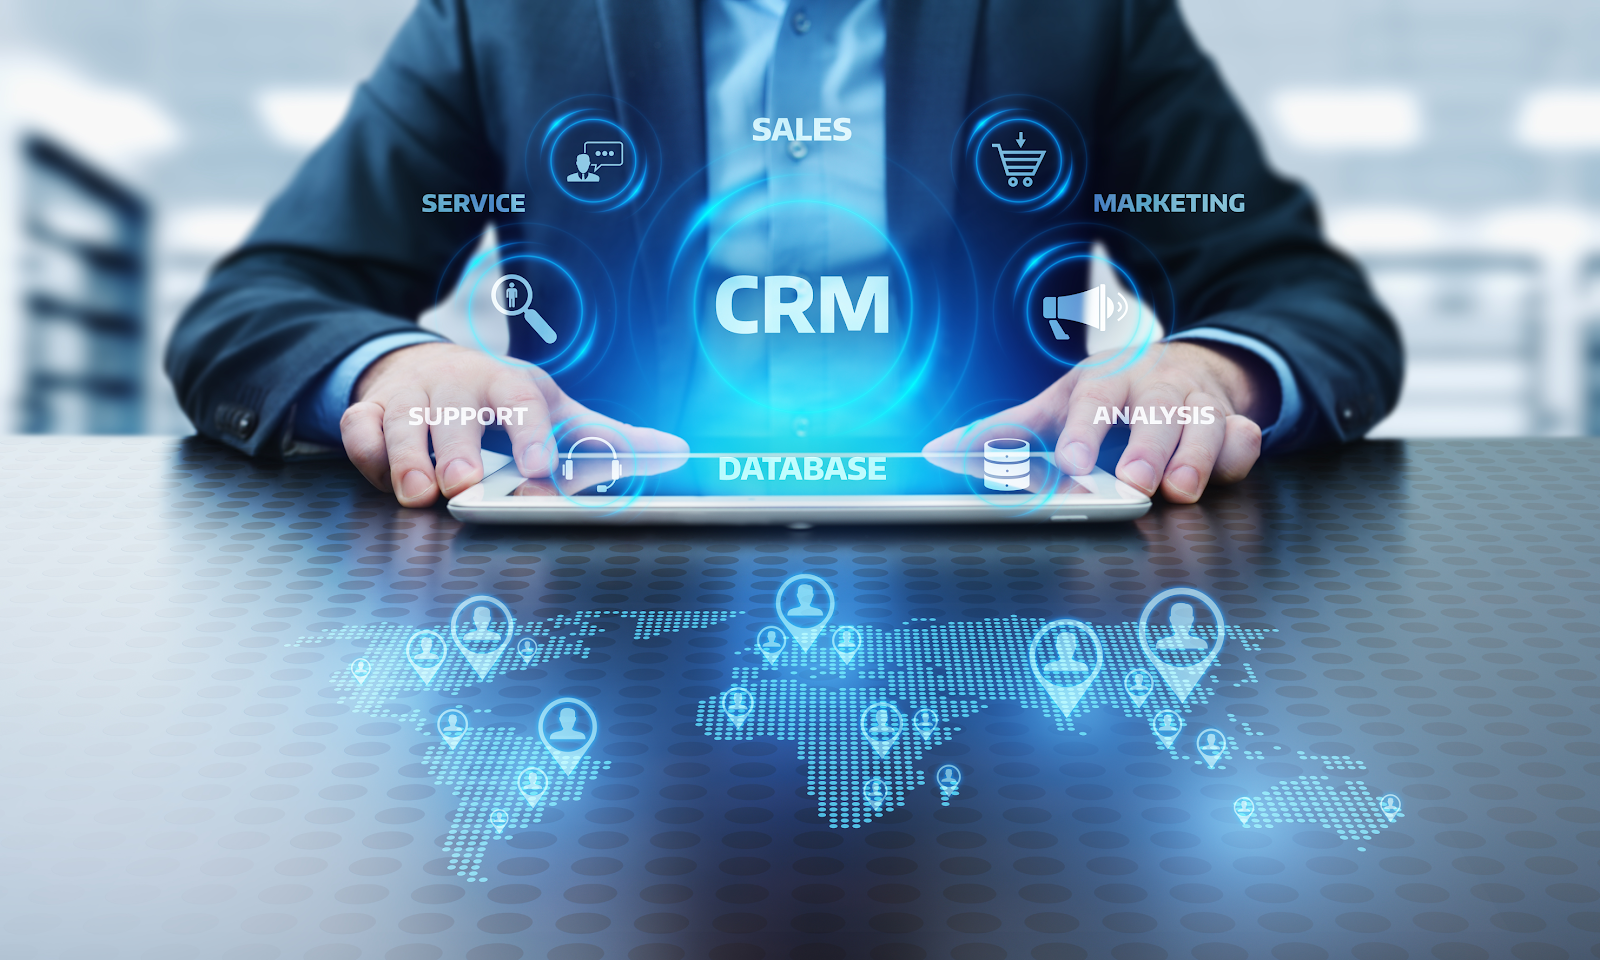 CRM-database-customers